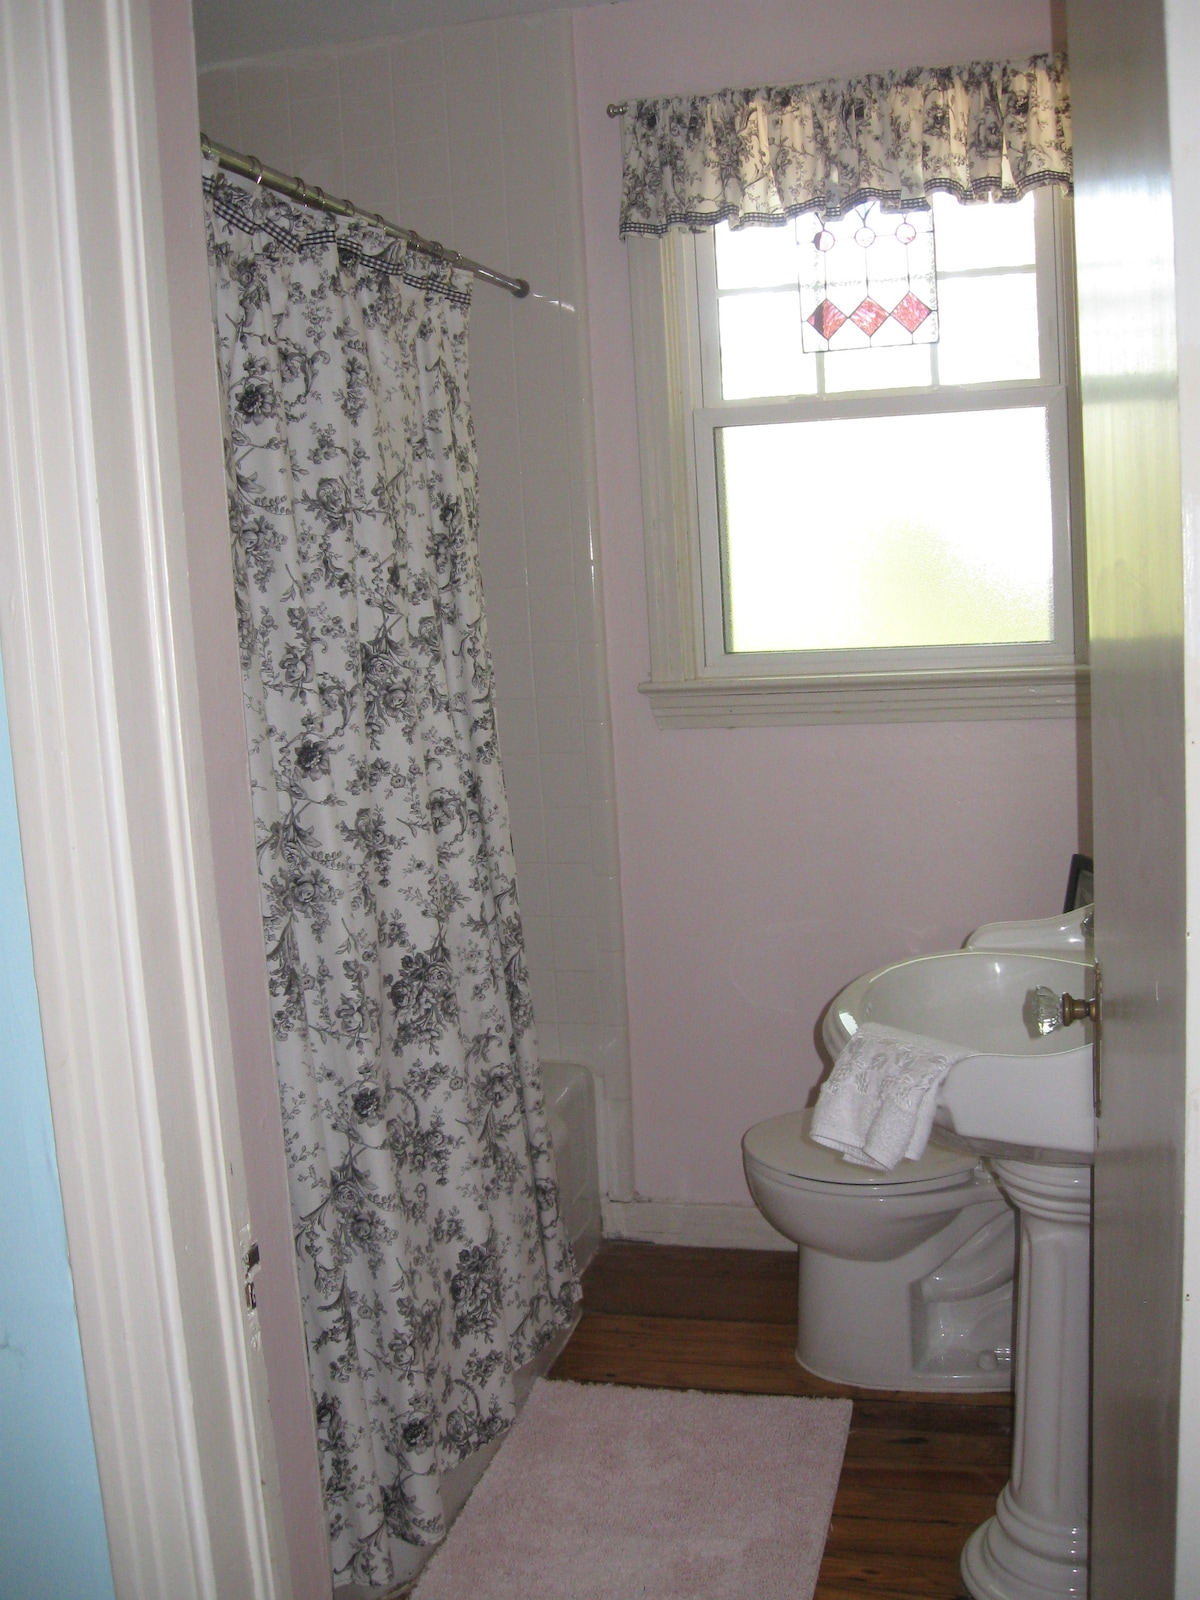 Bathroom with tub/shower and pedestal sink.